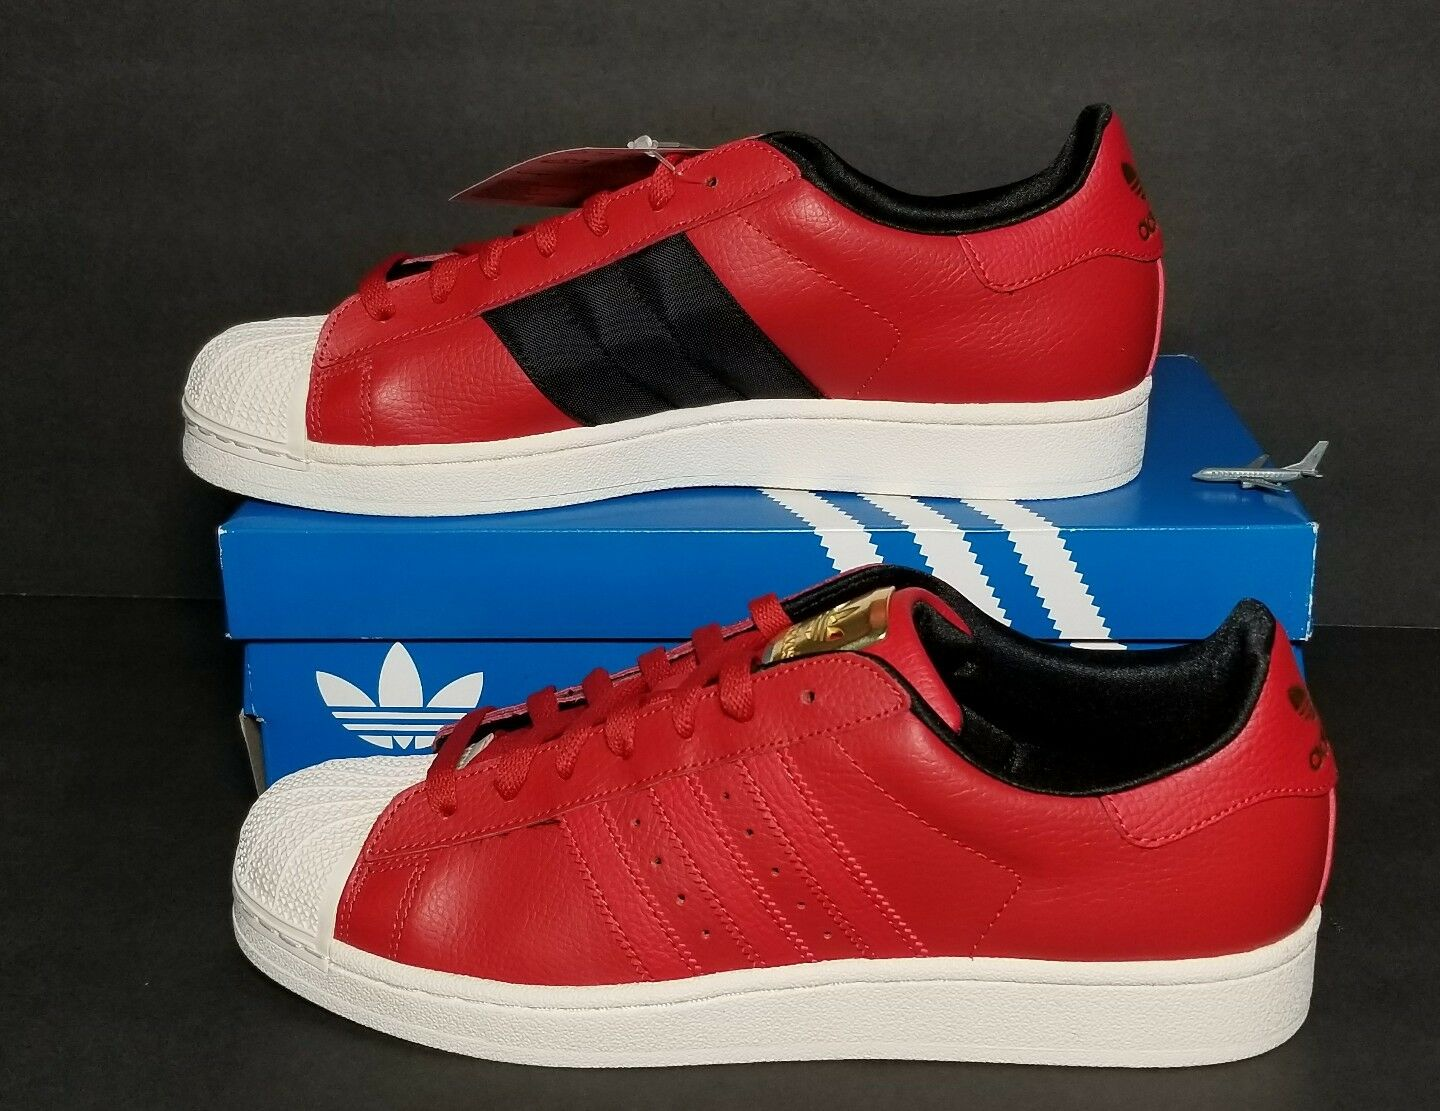 ADIDAS SUPERSTAR II MEN'S MULTIPLE SIZES NEW BOX RED LEATHER gold EMBLEM D74391